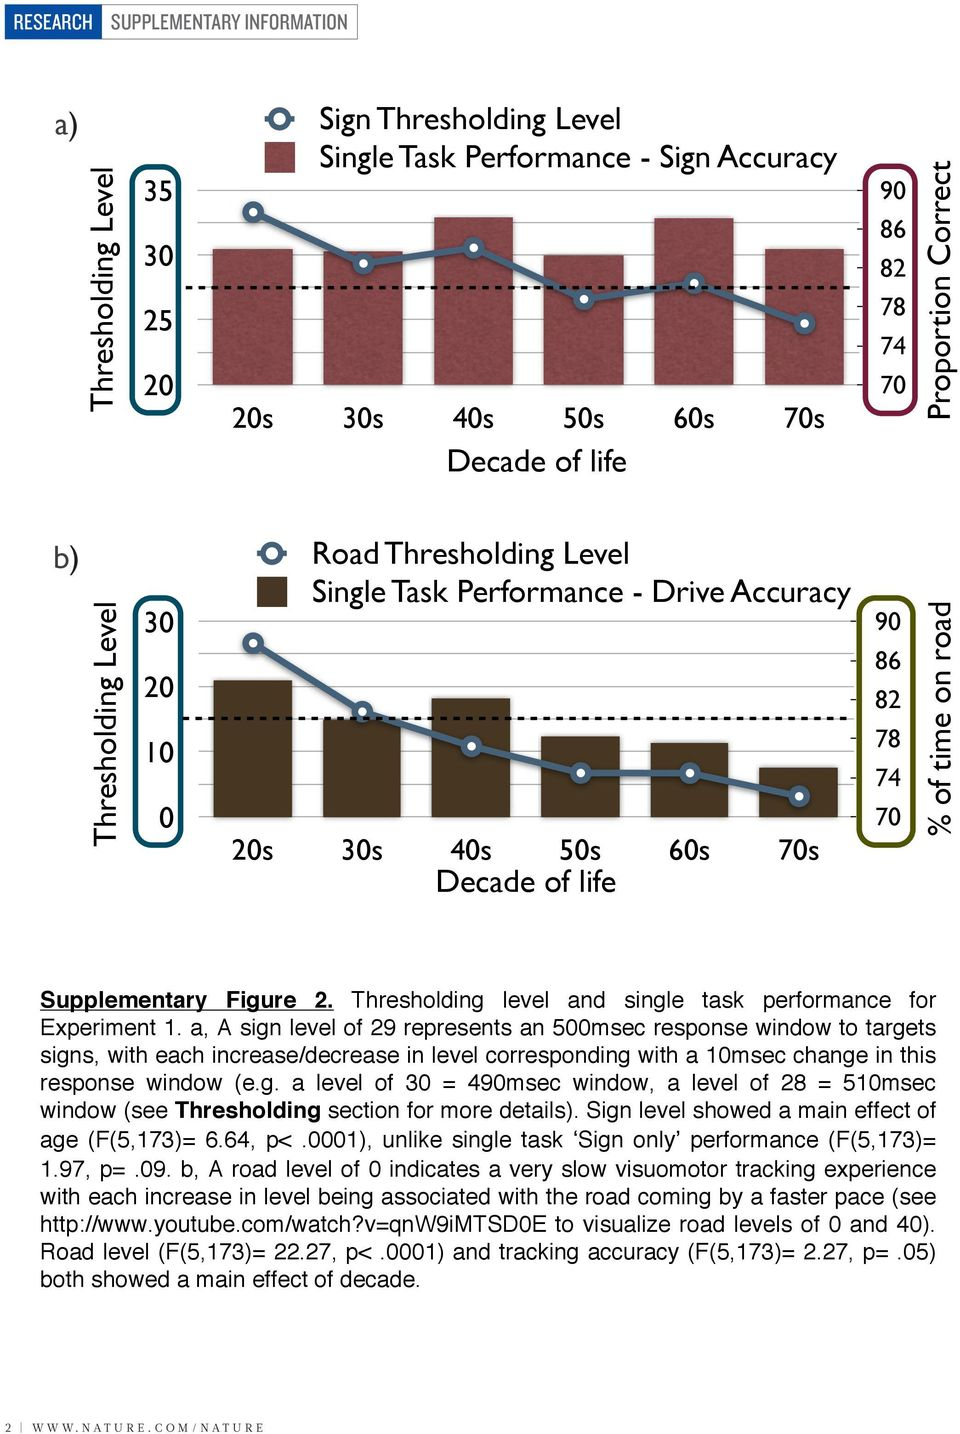 Thresholding level and single task performance for Experiment 1.